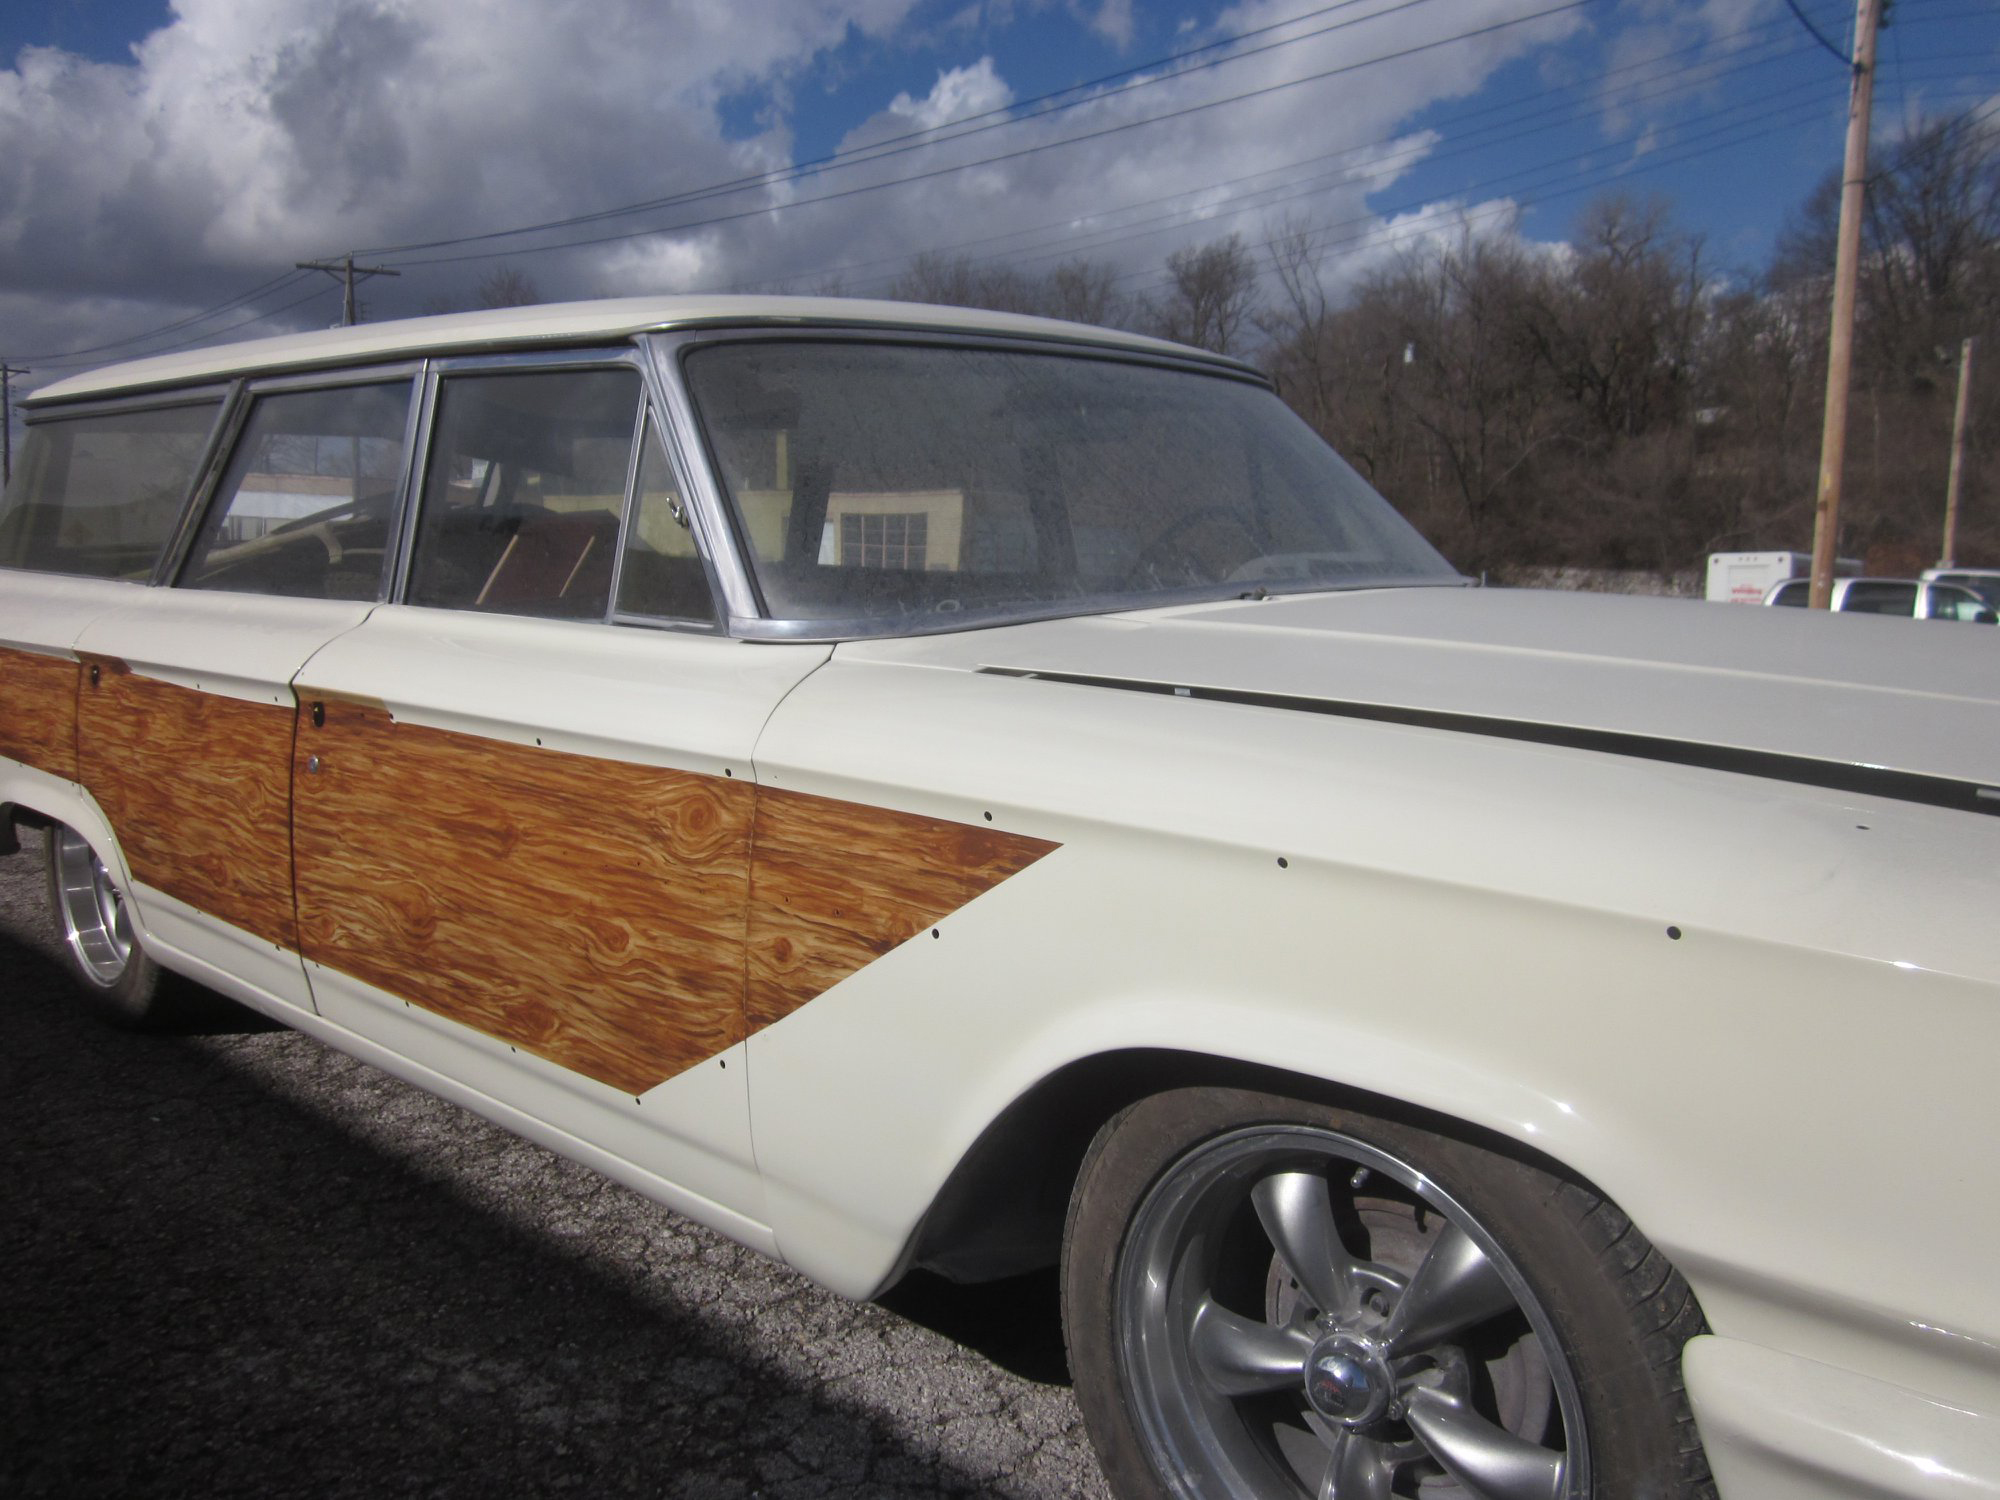 The customized woodgrain paint job is out and enjoying the sun